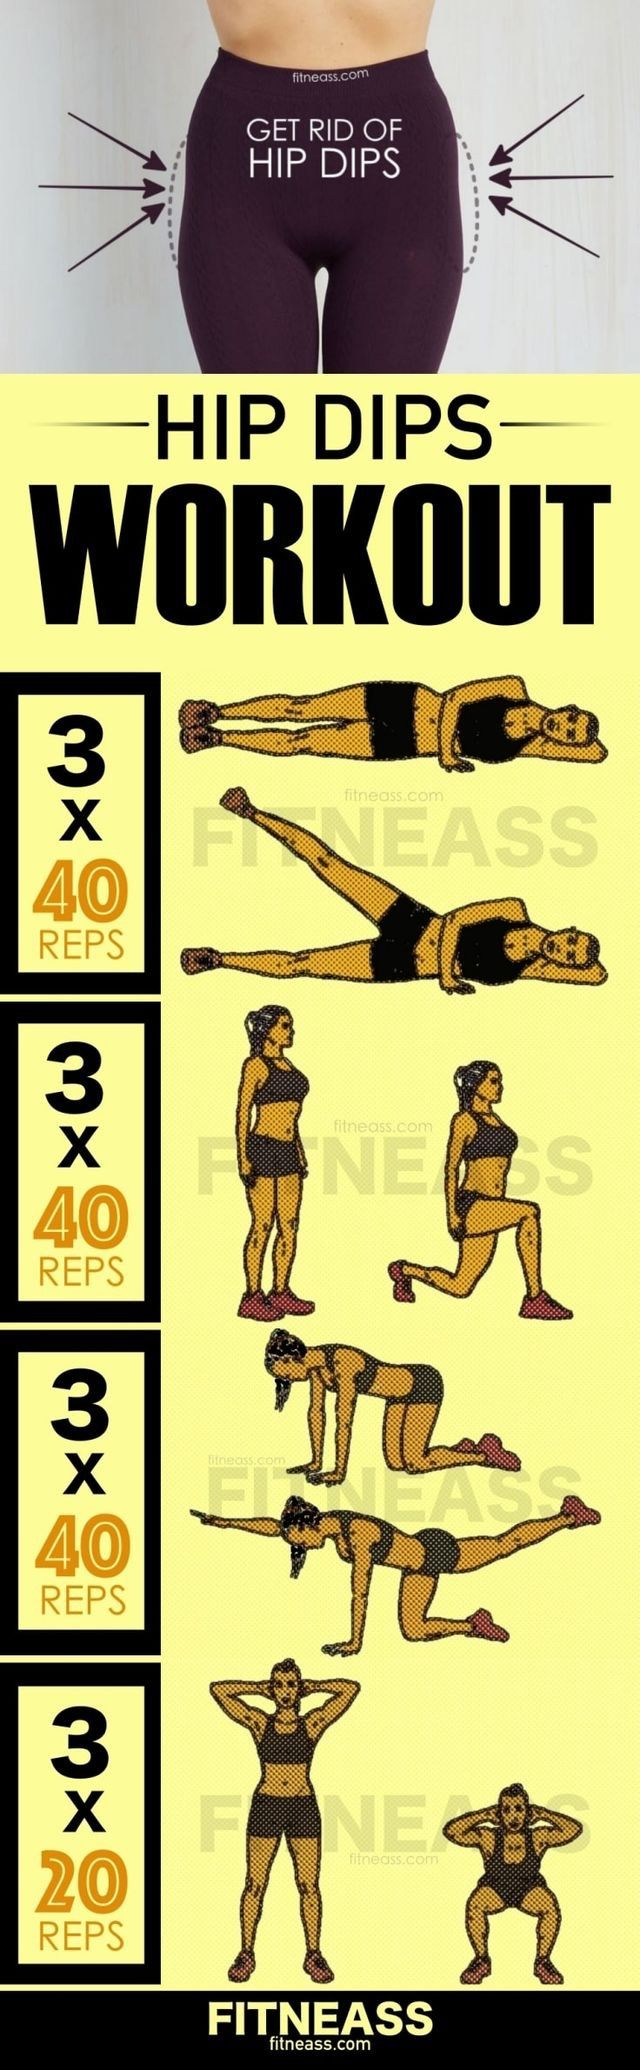 Hip Dips Workout | Posted By: AdvancedWeightLossTips.com